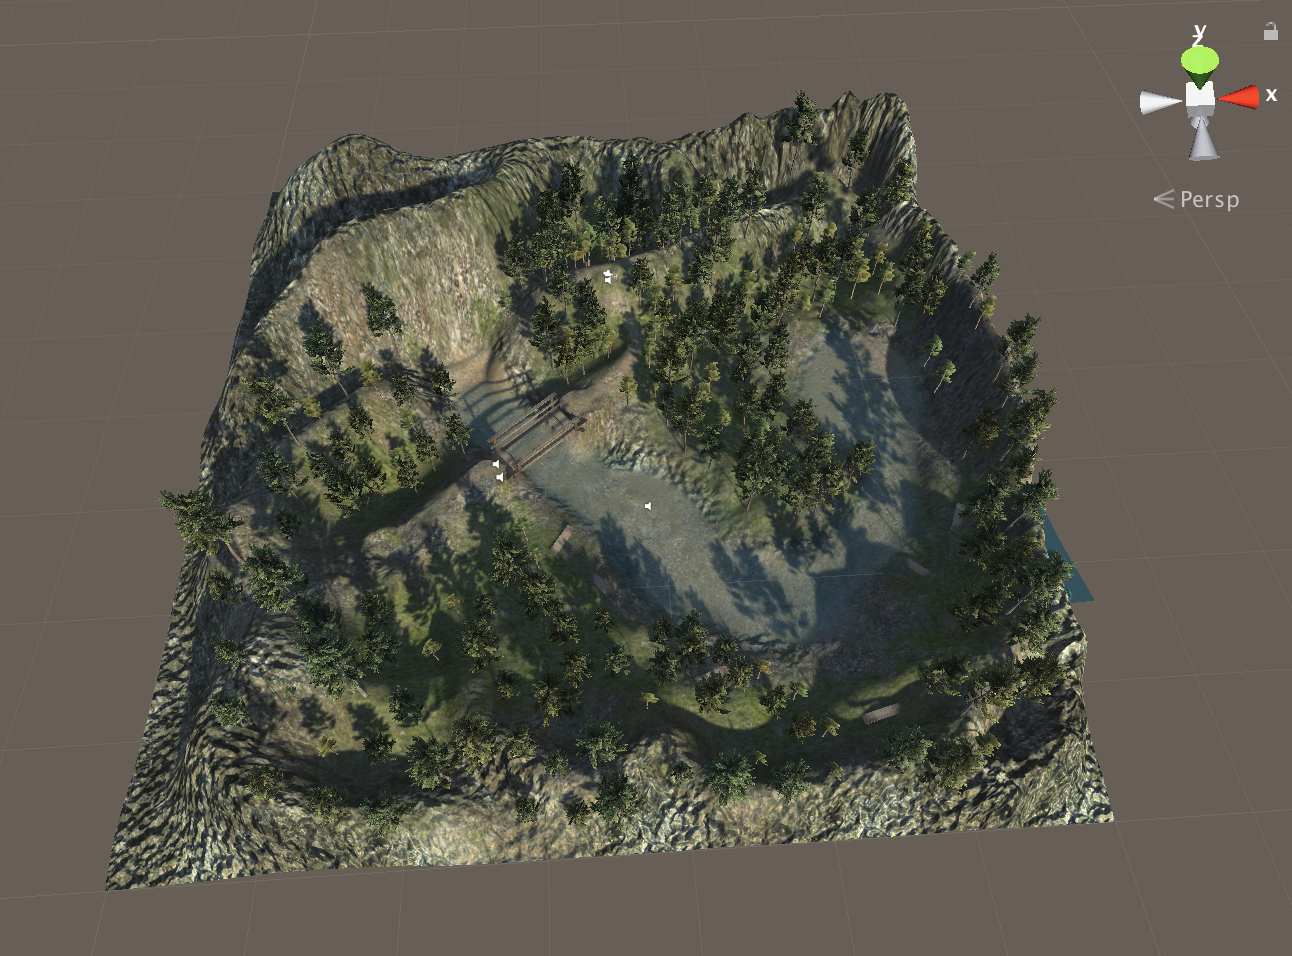 Overview of the whole level and terrain. Screenshot taken from the Unity Editor viewport.